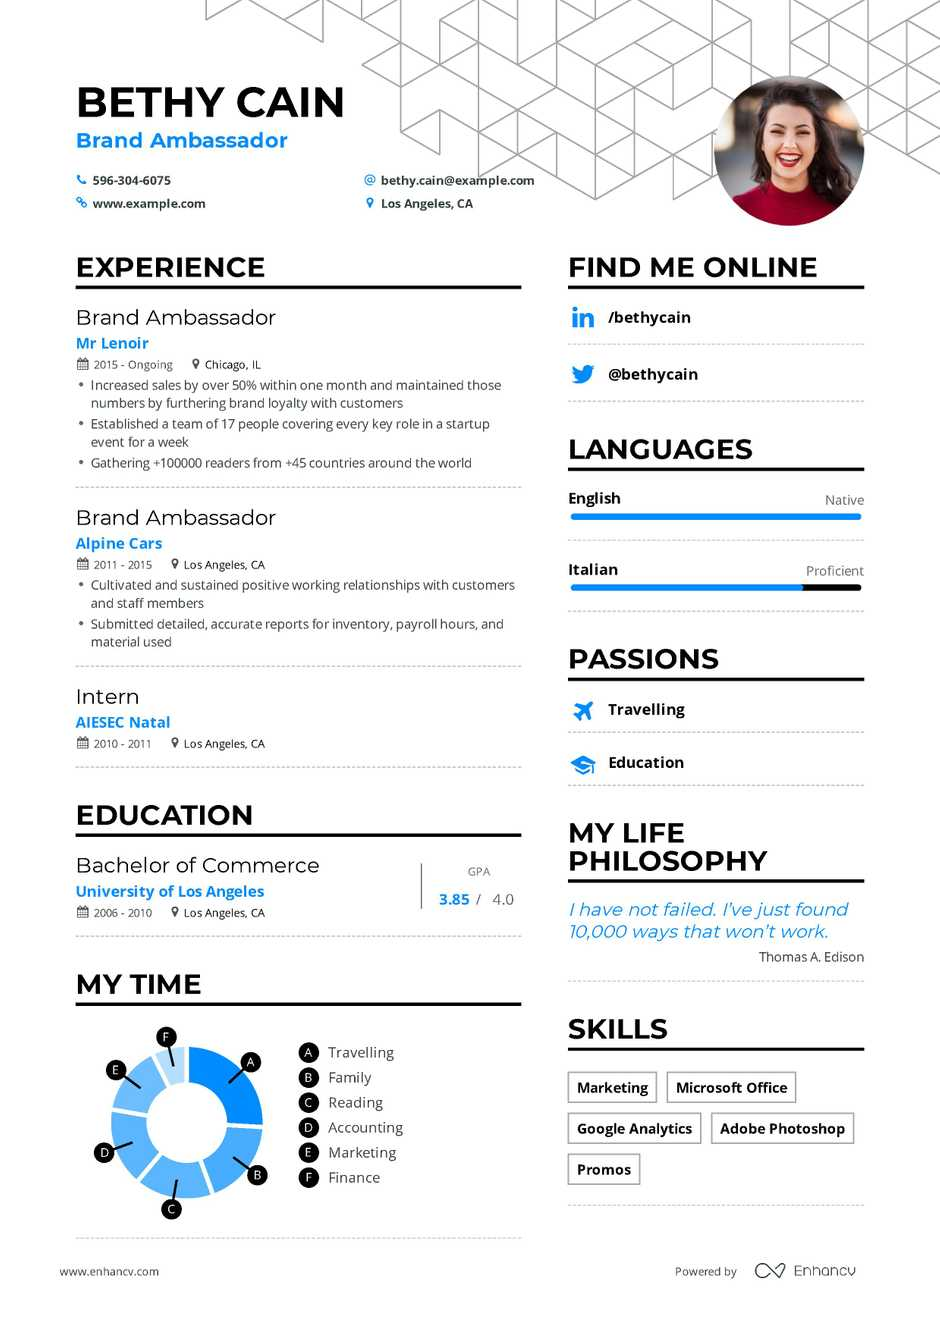 brand ambassador resume example and guide for 2019